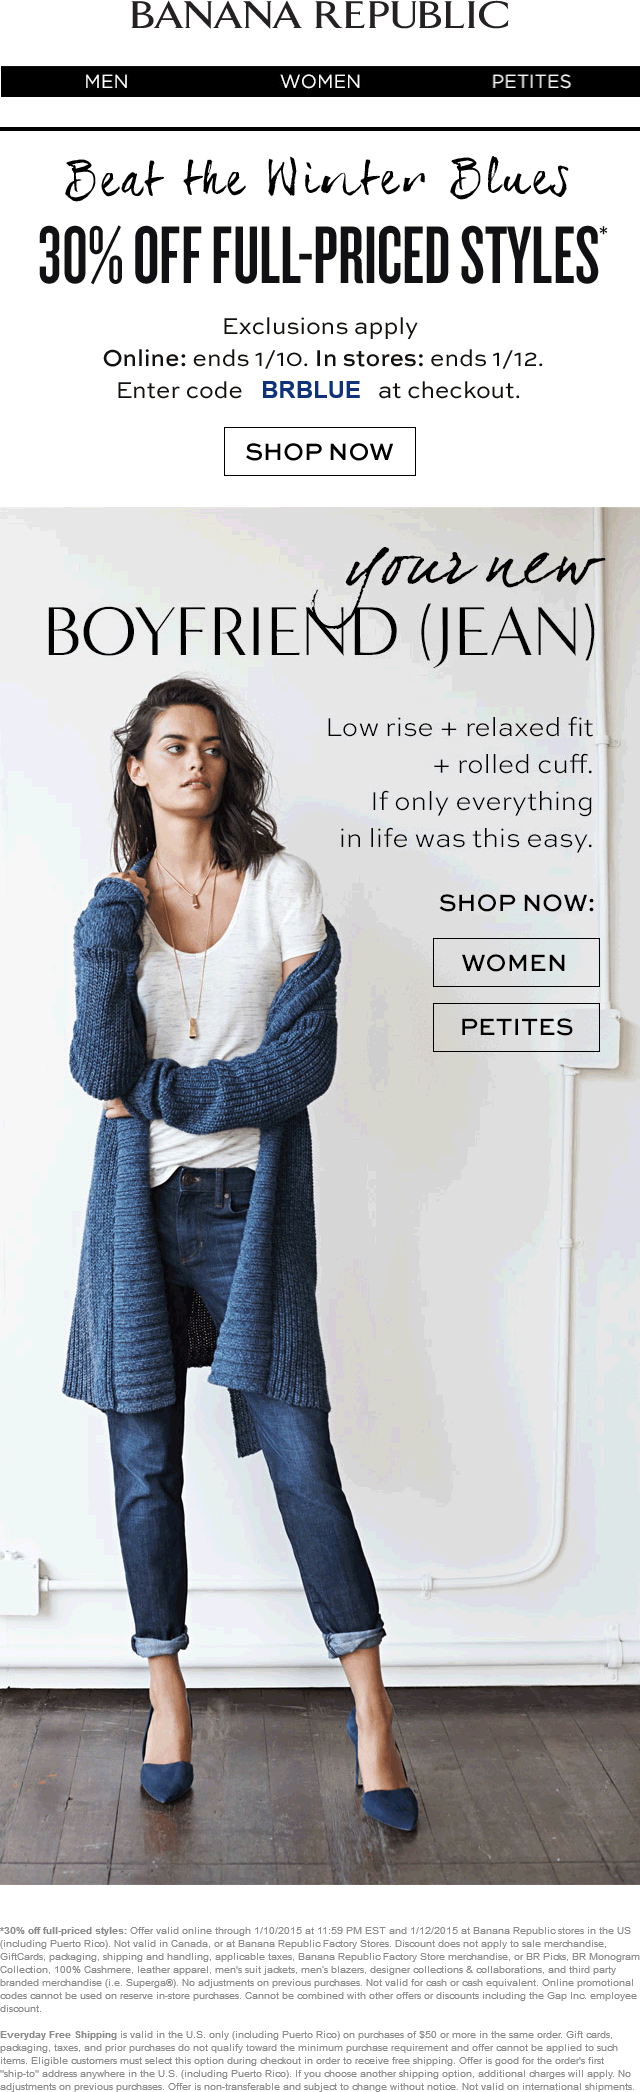 Banana Republic Coupon March 2018 30% off at Banana Republic, or online via promo code BRBLUE